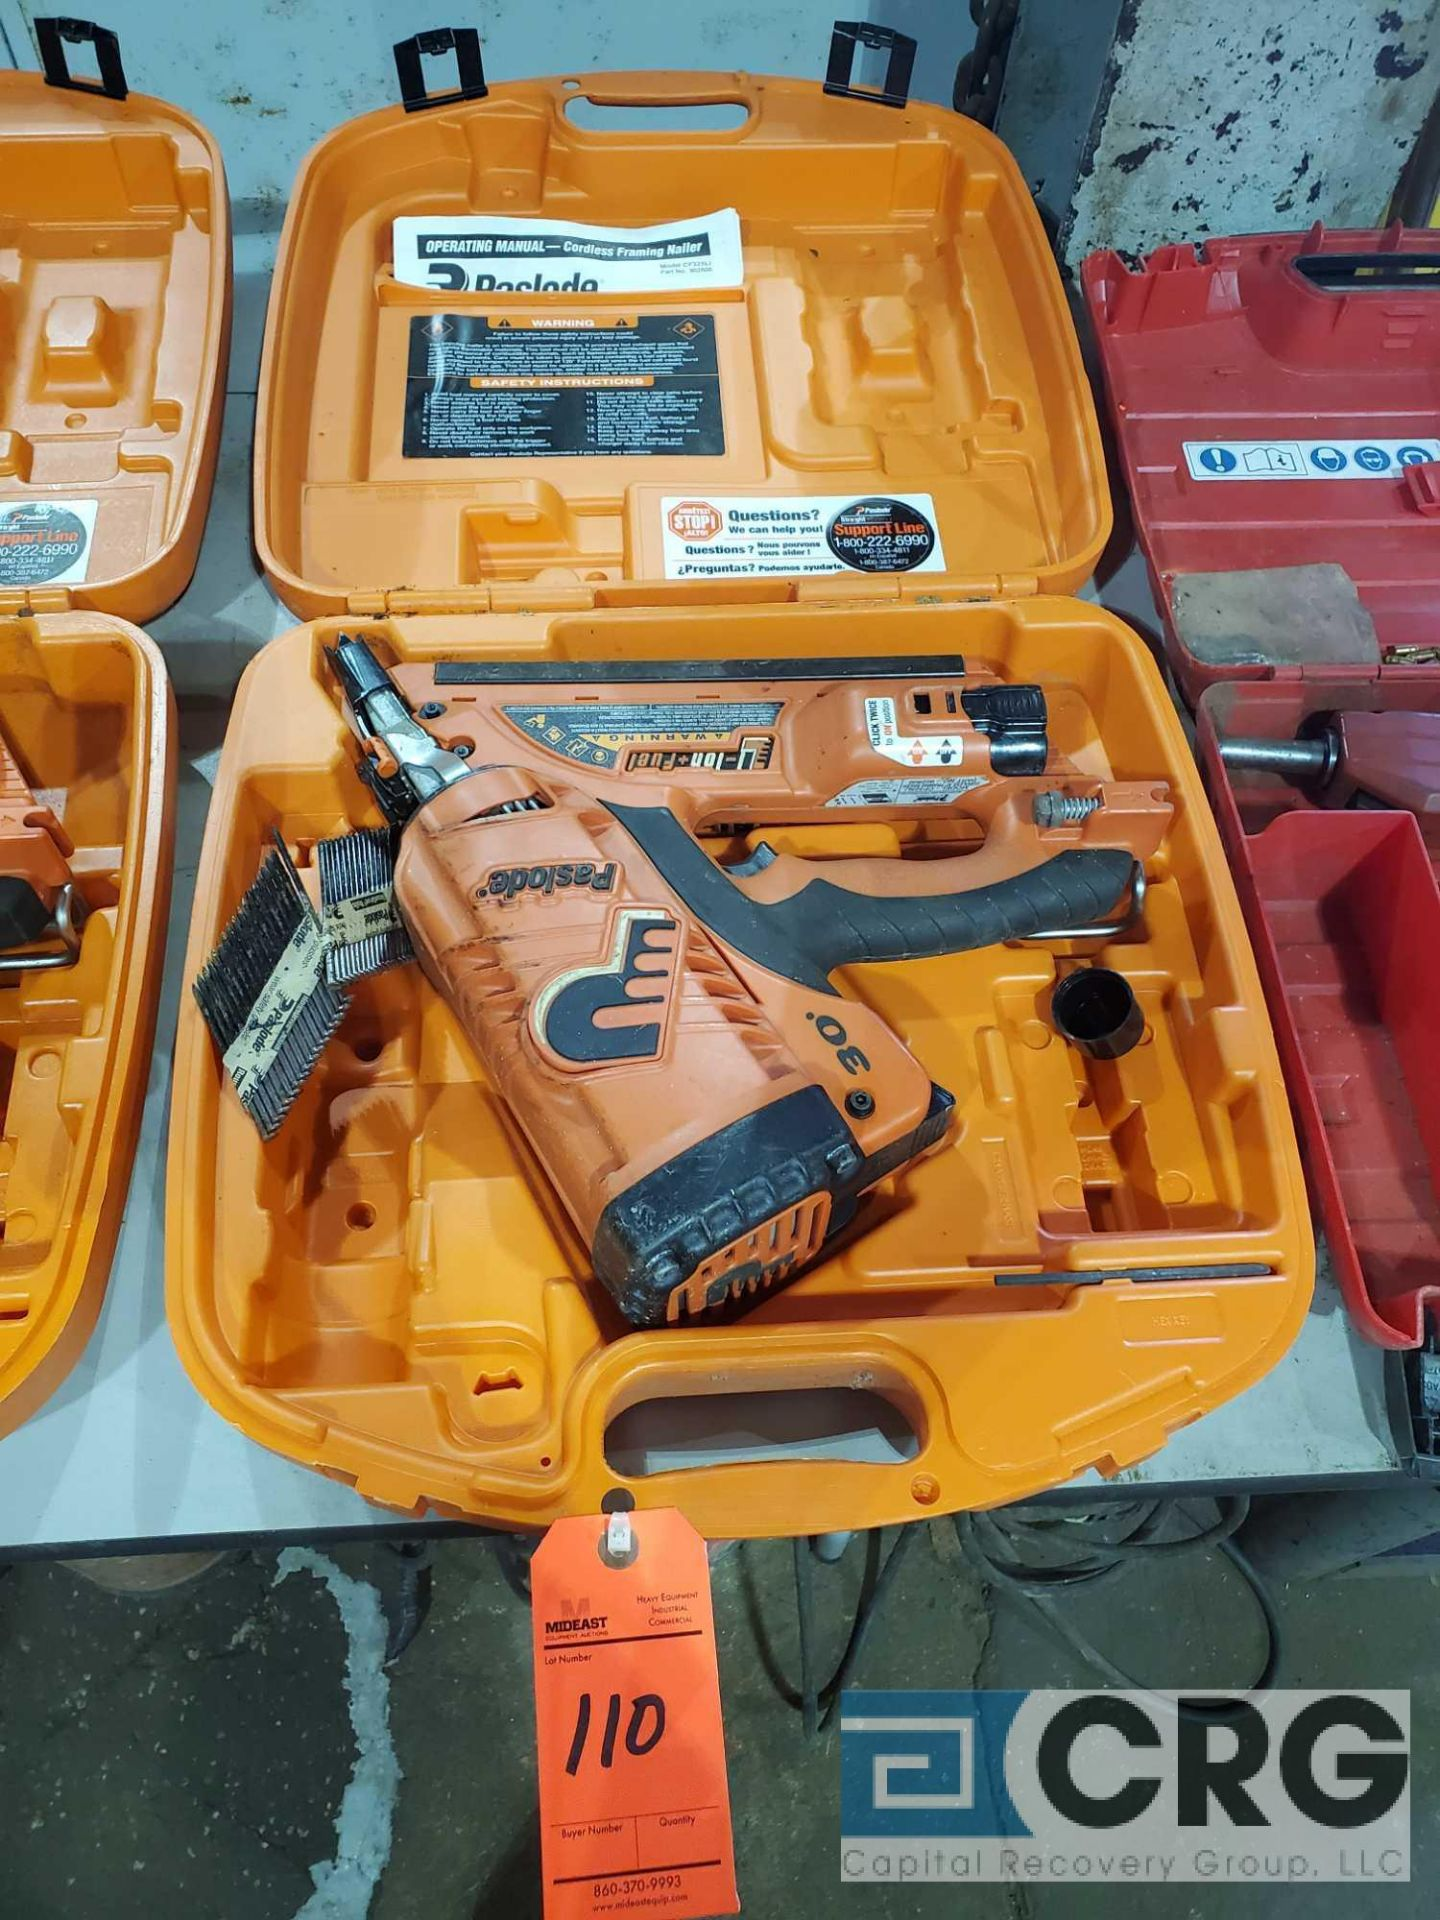 Lot 110 - Paslode CF325LI cordless framing nailer with case